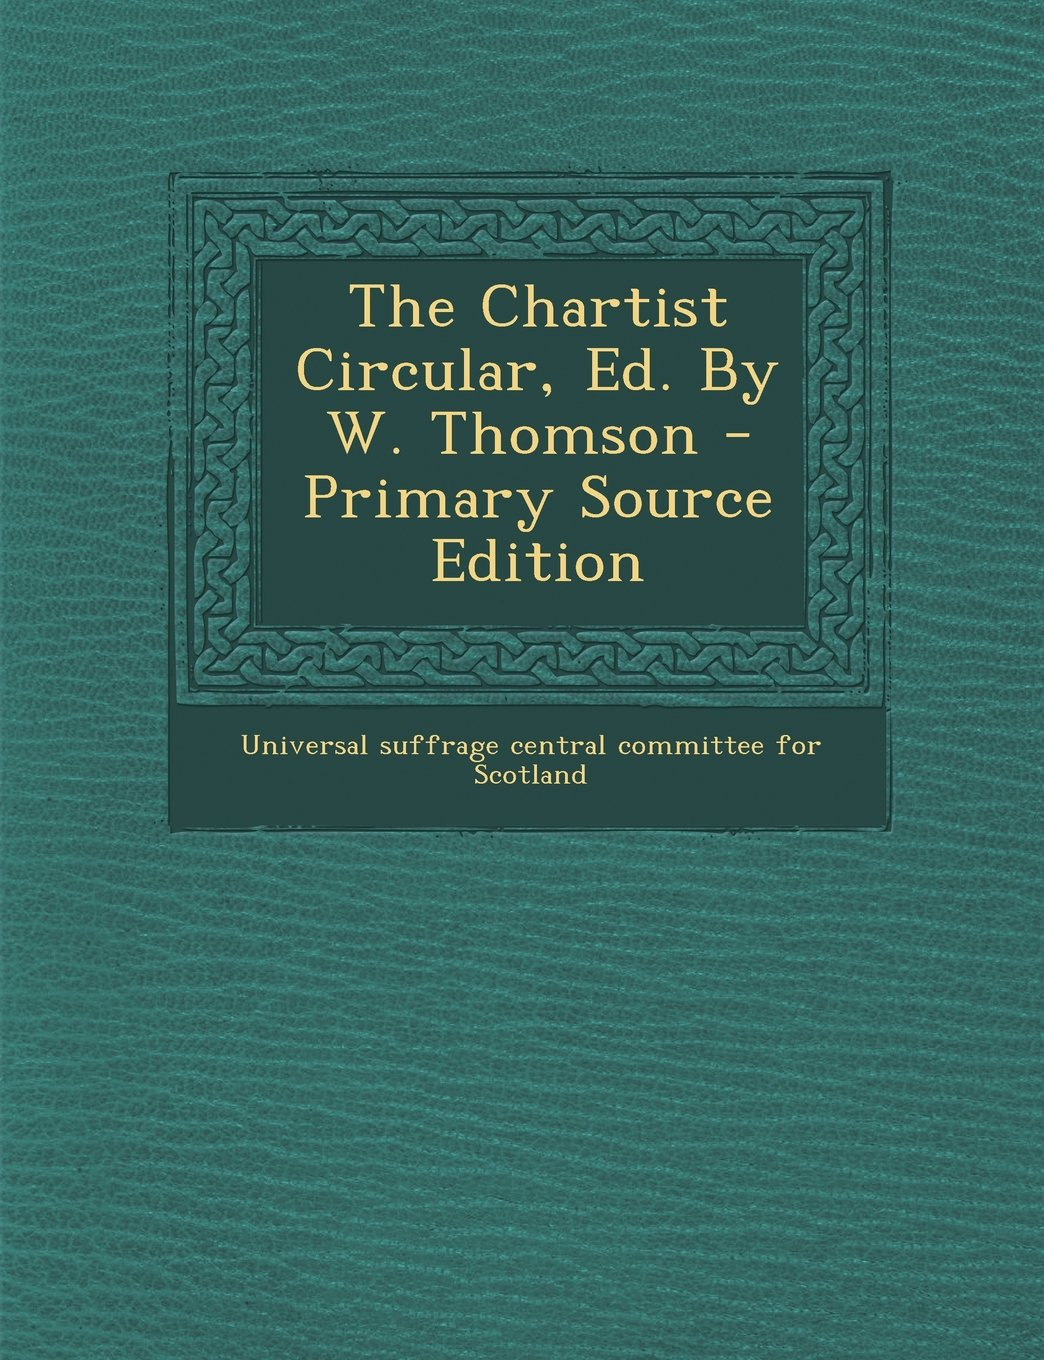 The Chartist Circular, Ed. By W. Thomson - Primary Source Edition pdf epub